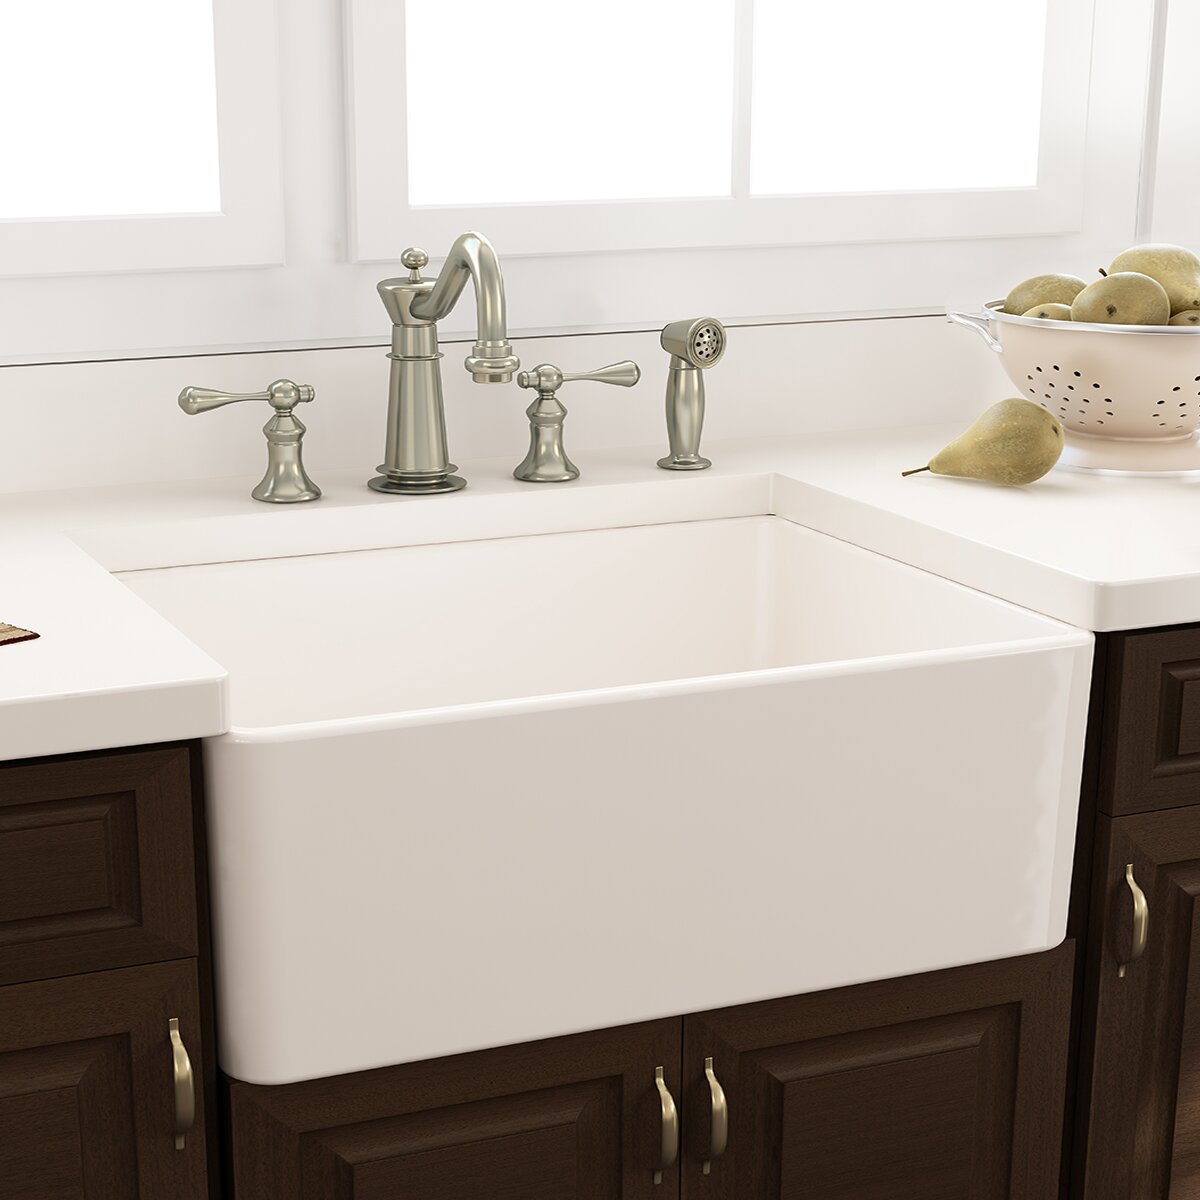 nantucket sinks cape 3025 x 18 kitchen sink with grid and drain reviews wayfair - Kitchen Sinks Pictures